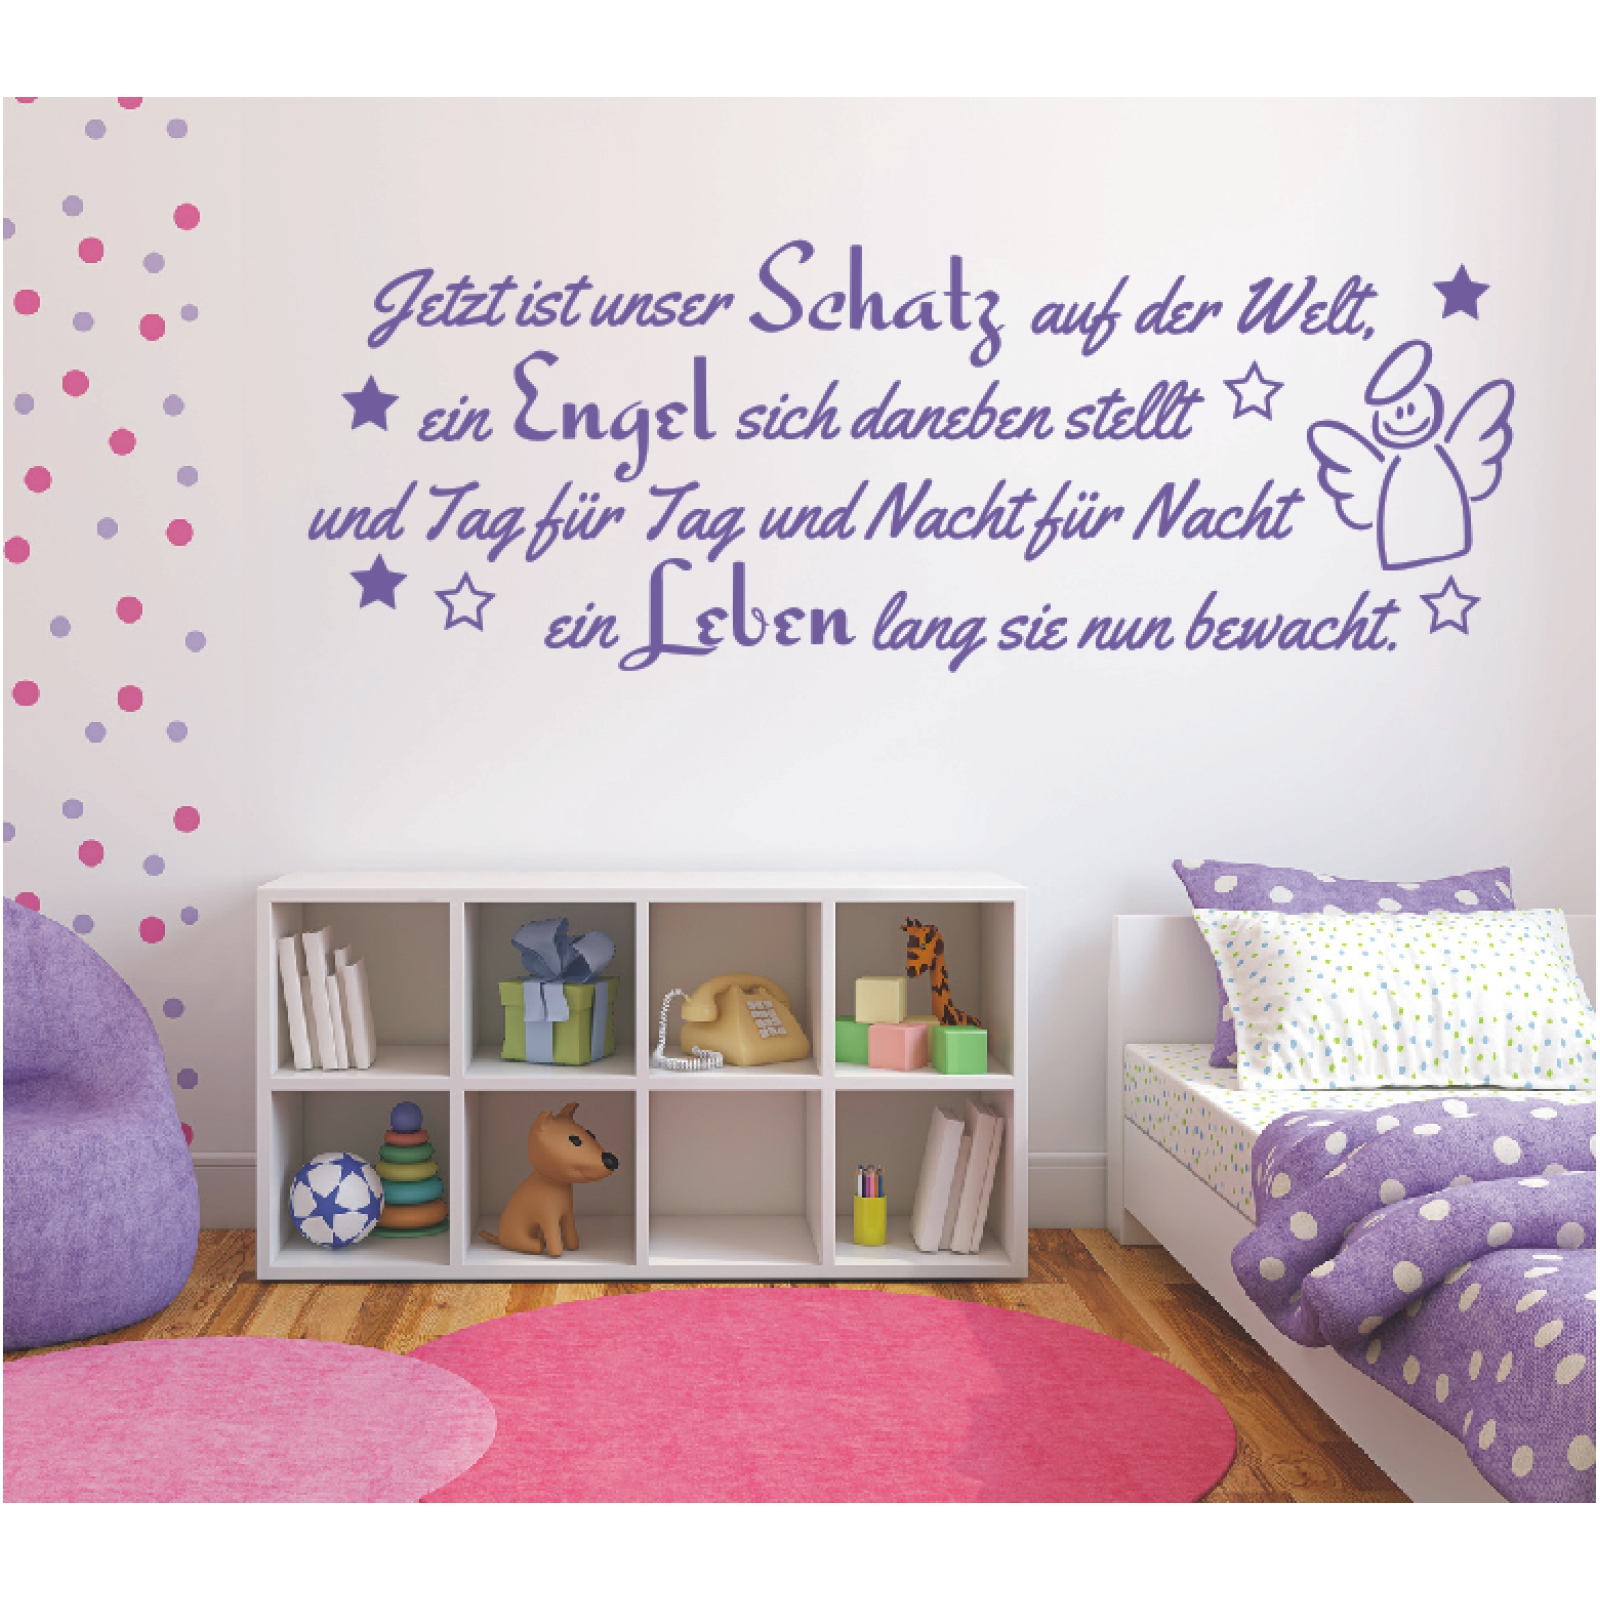 weihnachten engel spruch wandtattoo winter wandsticker aufkleber sticker ebay. Black Bedroom Furniture Sets. Home Design Ideas